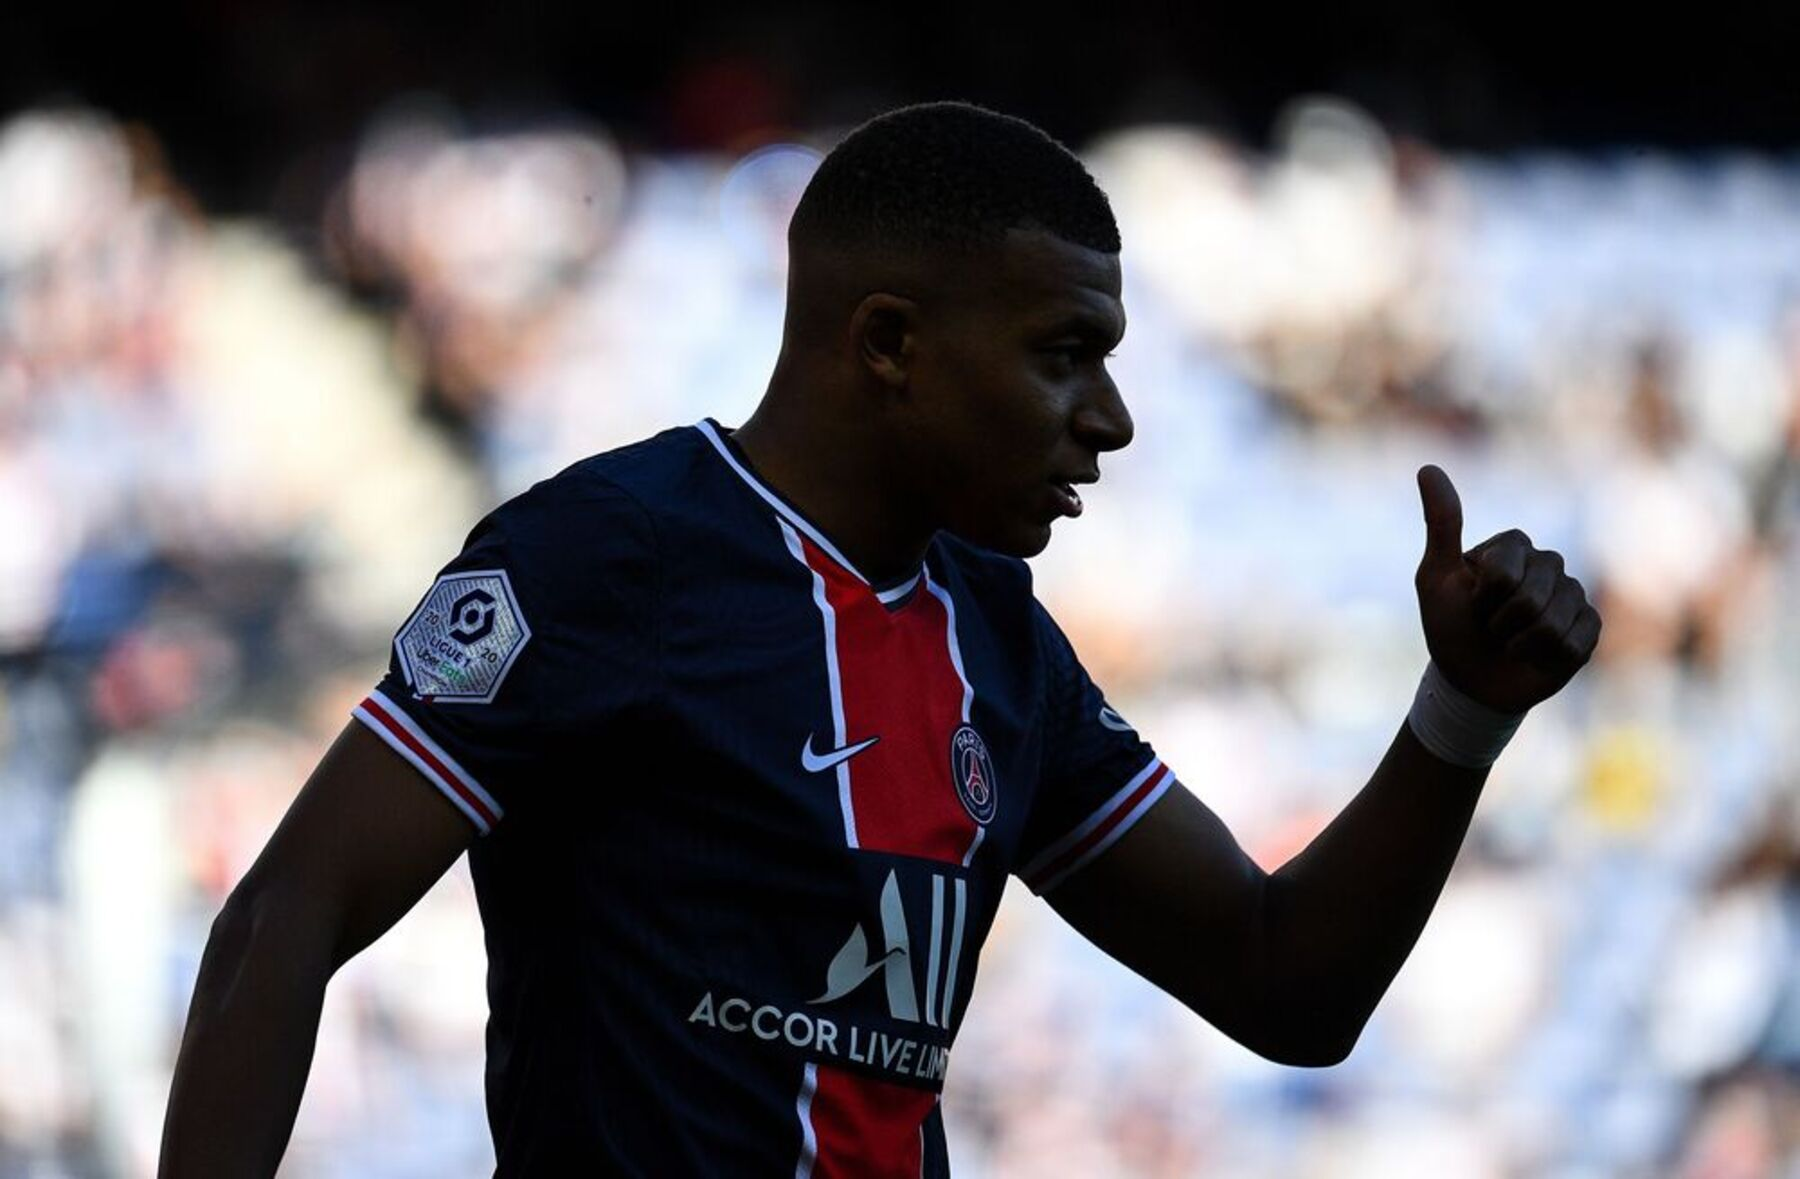 Kylian Mbapp U00e9 Is Ready For A PSG Exit In 2021 Claims